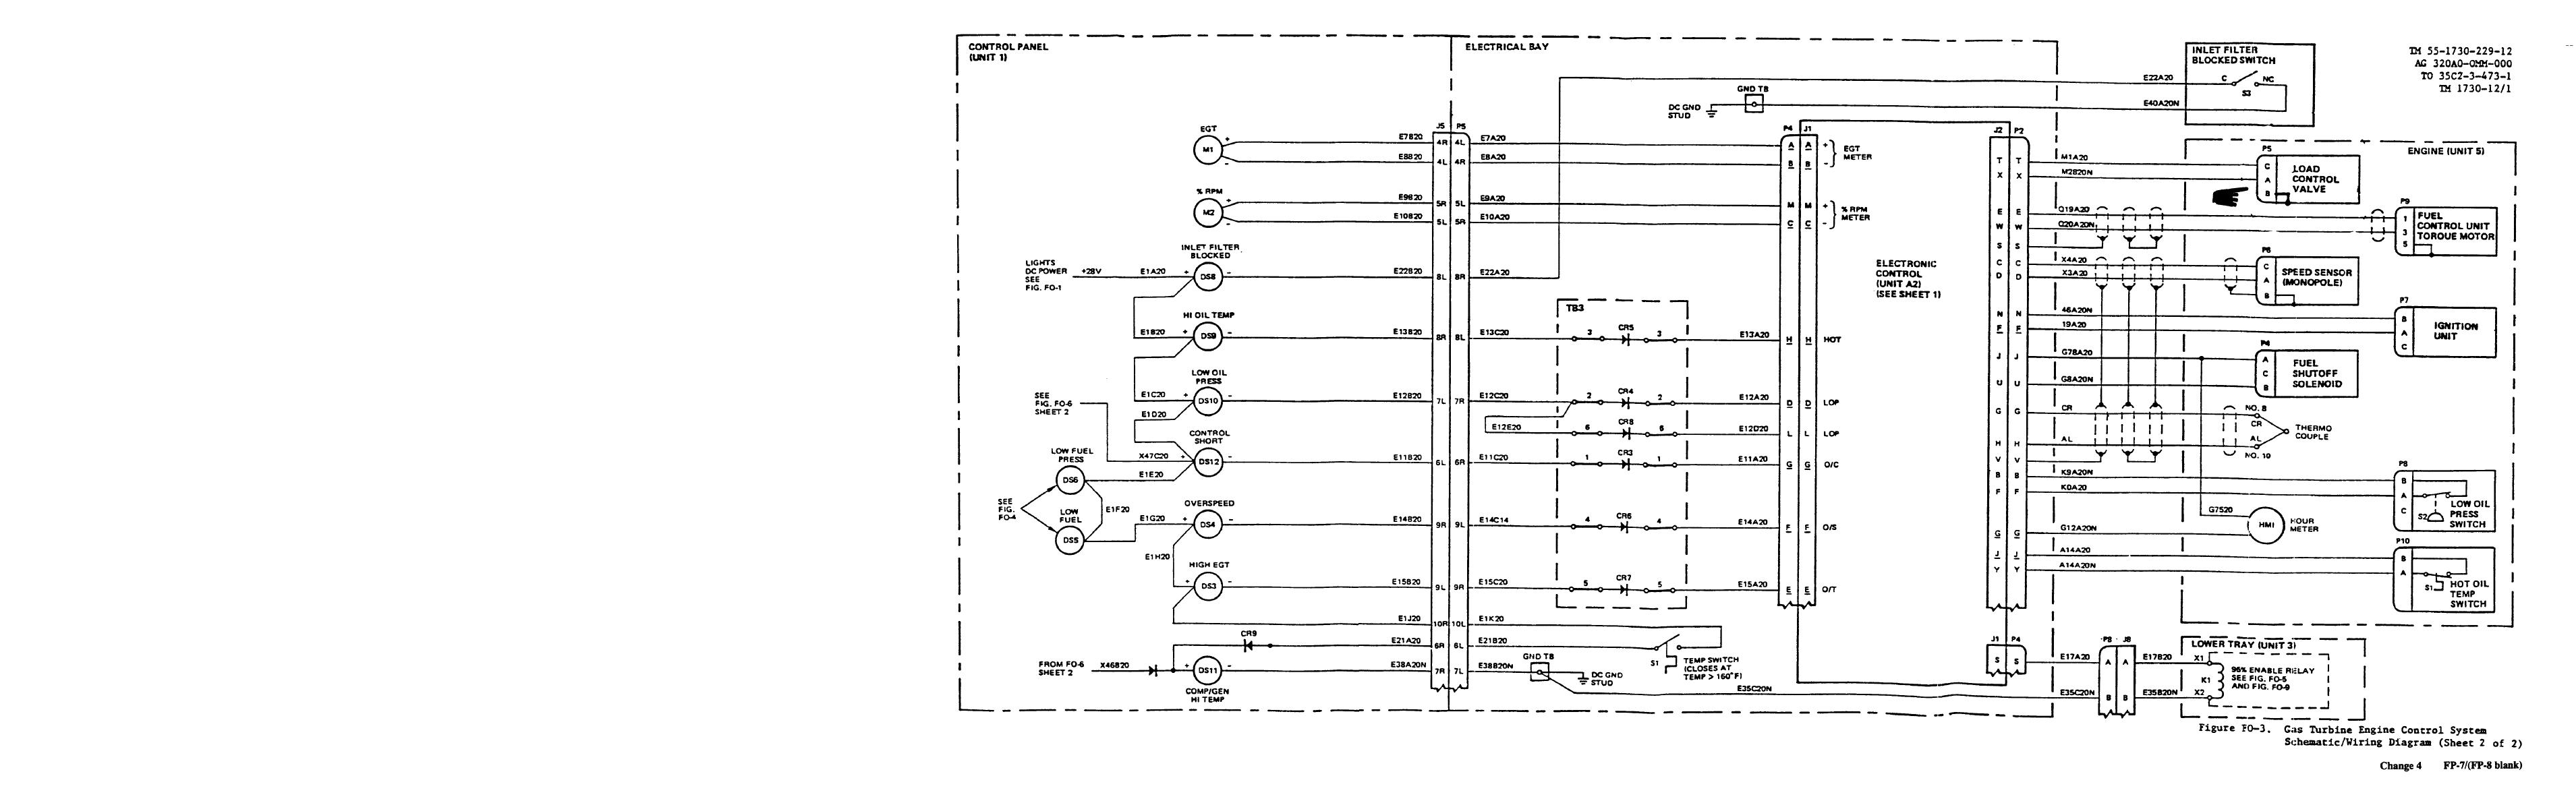 TM 55 1730 229 120545im figure fo 3 gas turbine engine control system schematic wiring wiring diagram for access control system at edmiracle.co